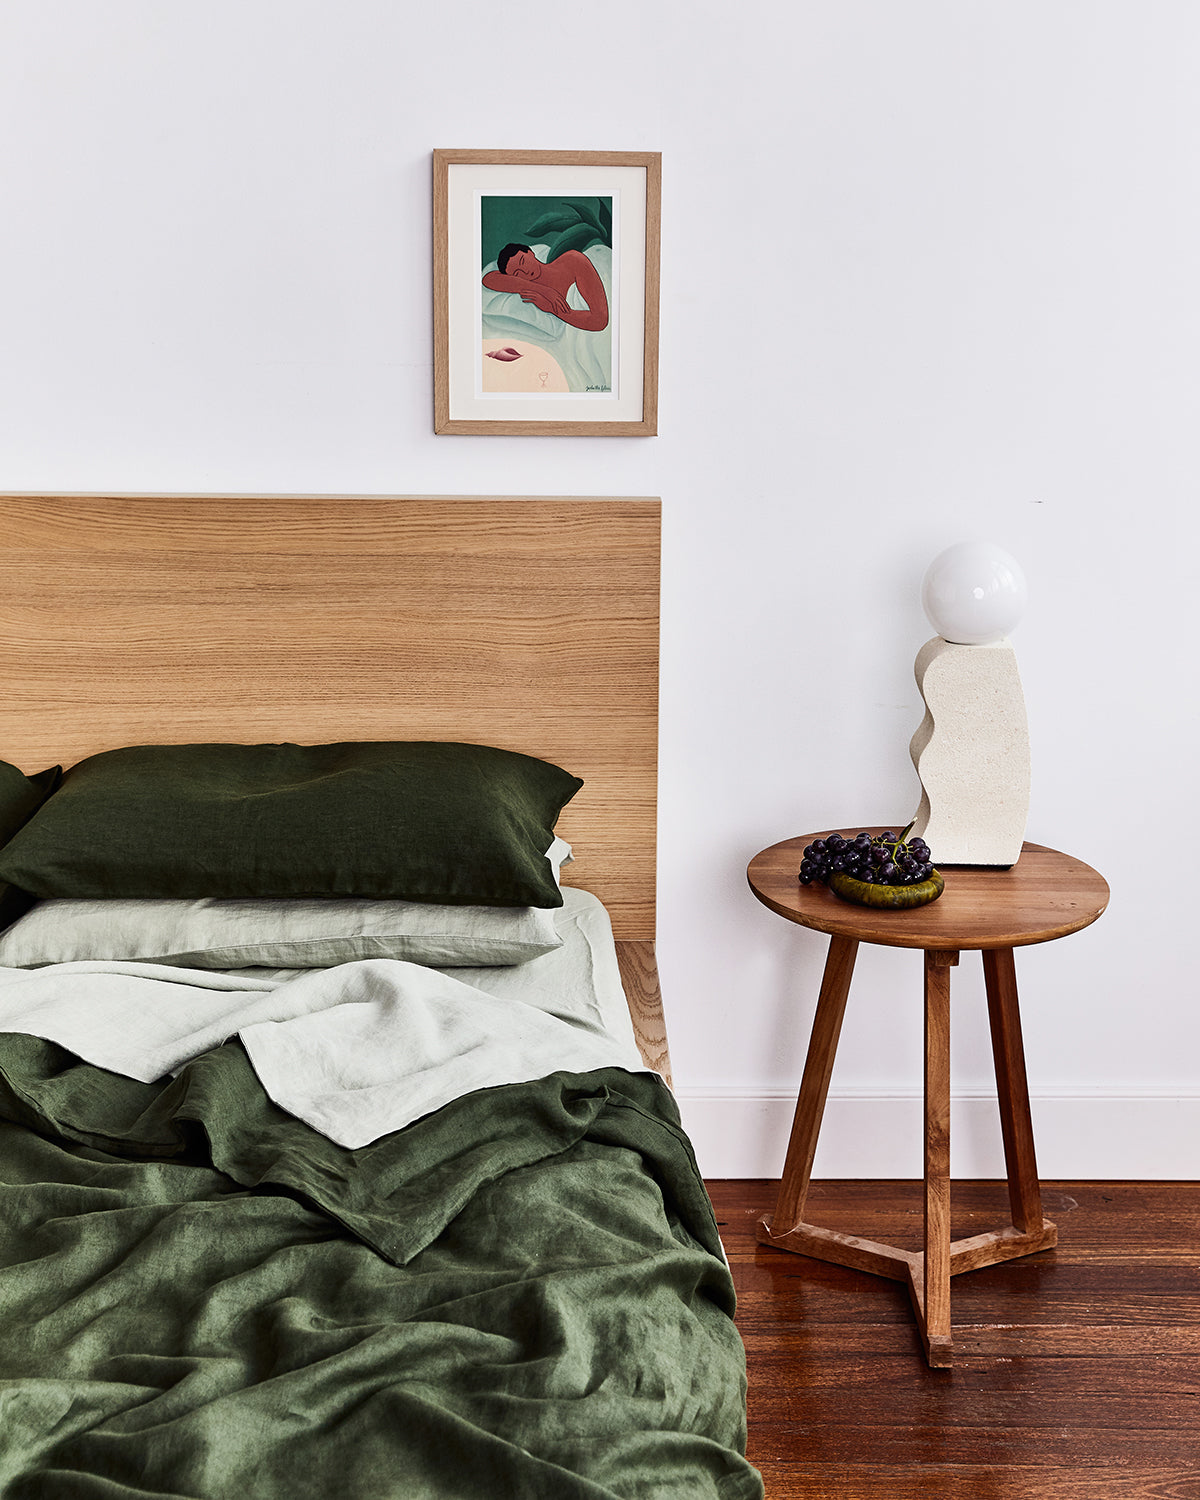 Isabelle Feliu x Bed Threads 'La Sieste' Print